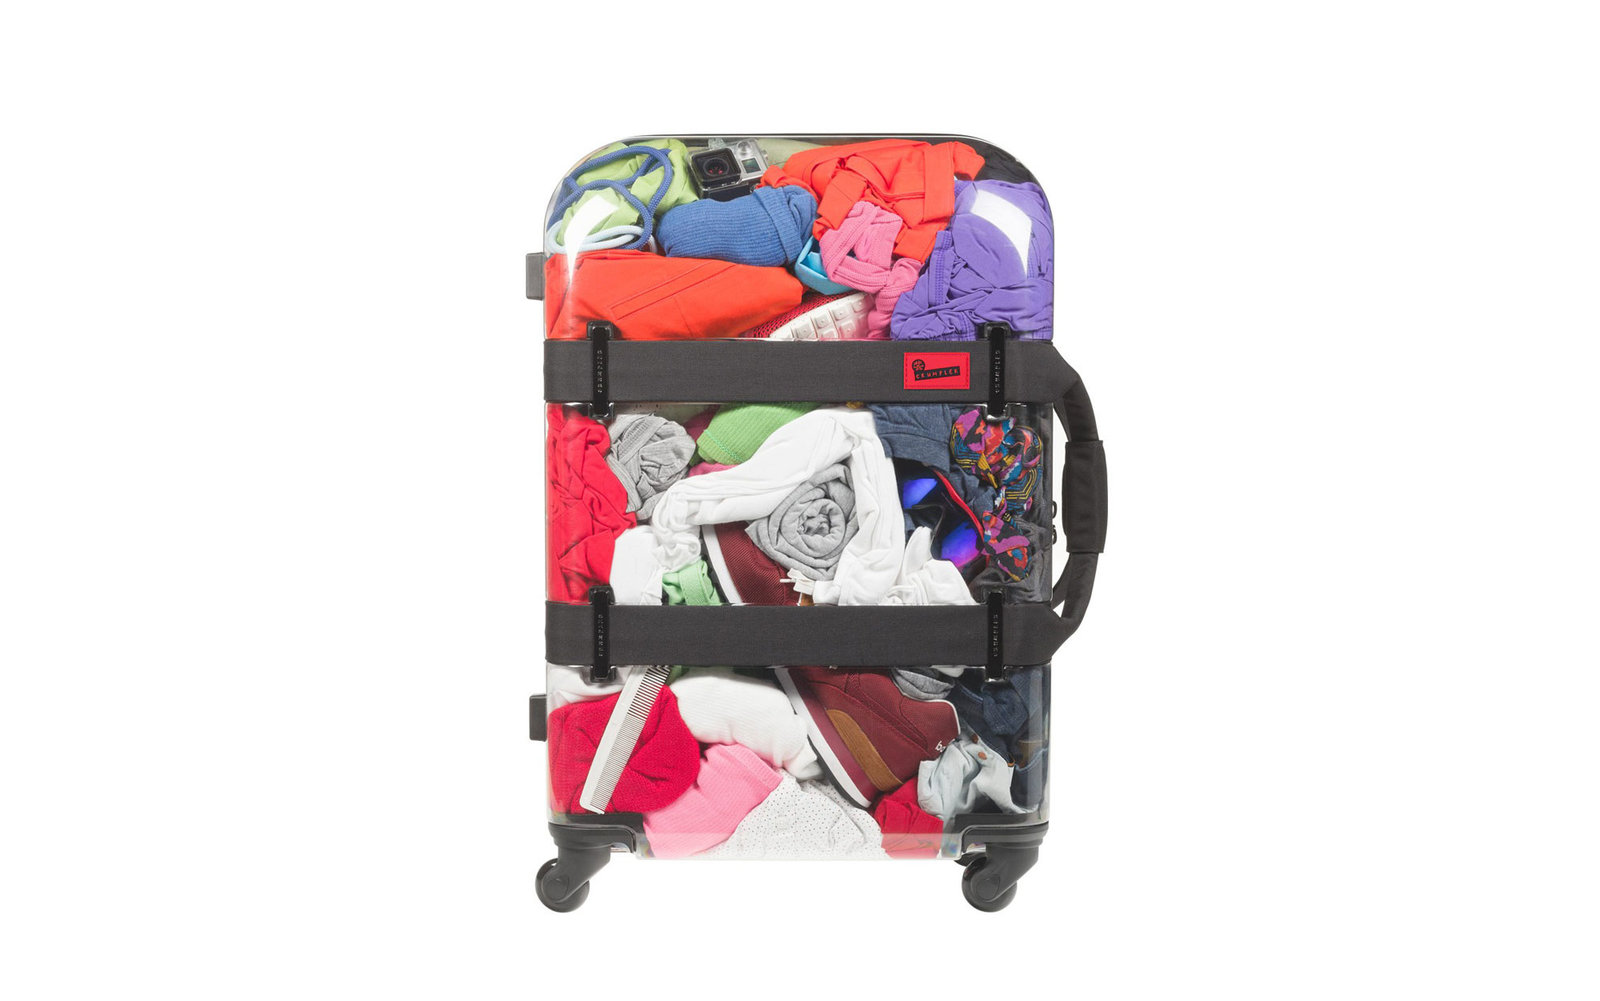 See-through suitcase